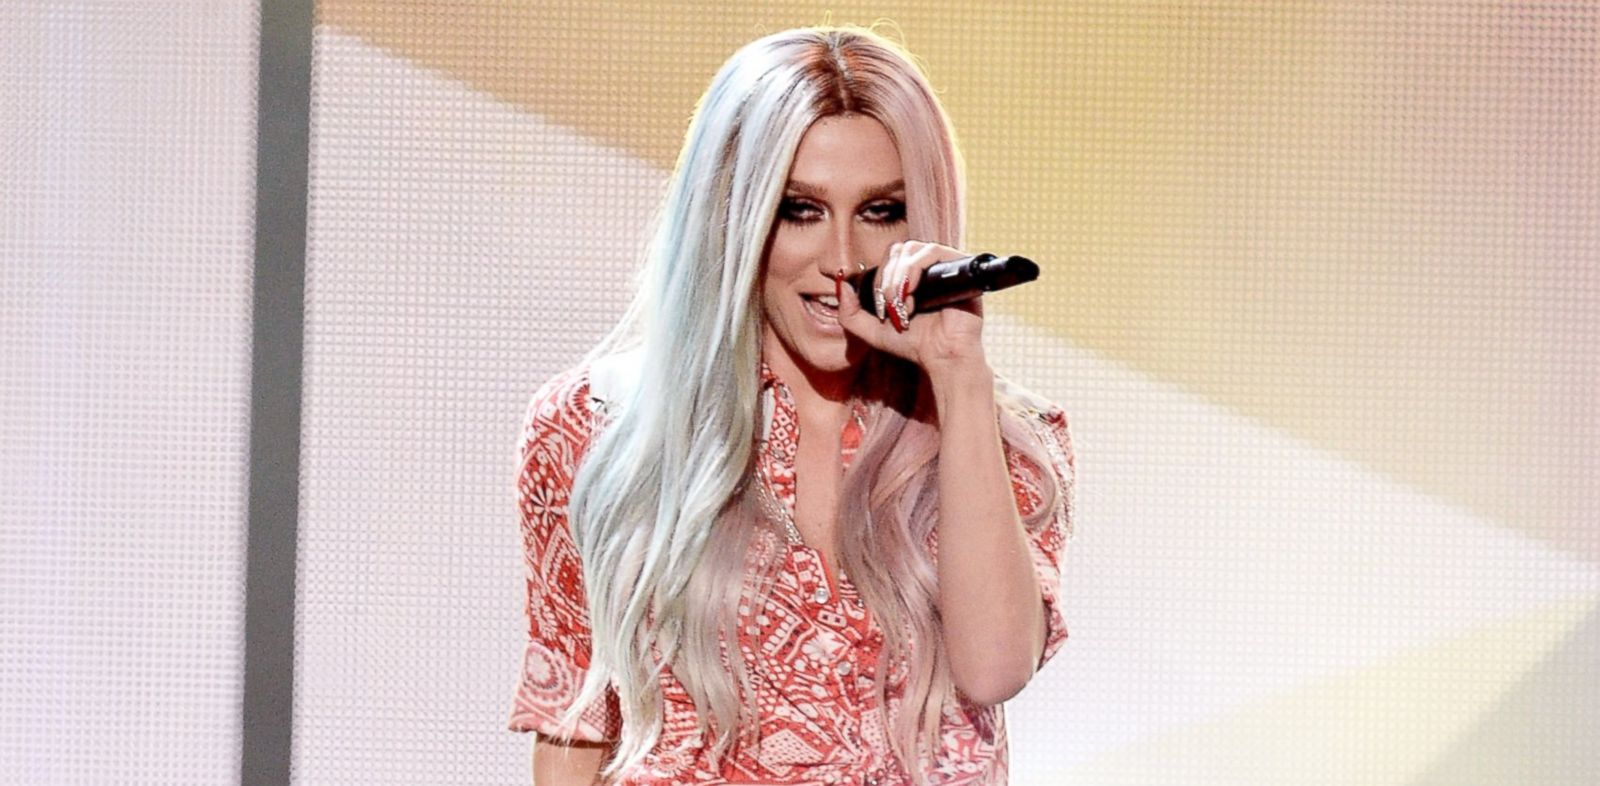 PHOTO: Ke$ha performs onstage during the 2013 American Music Awards on Nov. 24, 2013 in Los Angeles.